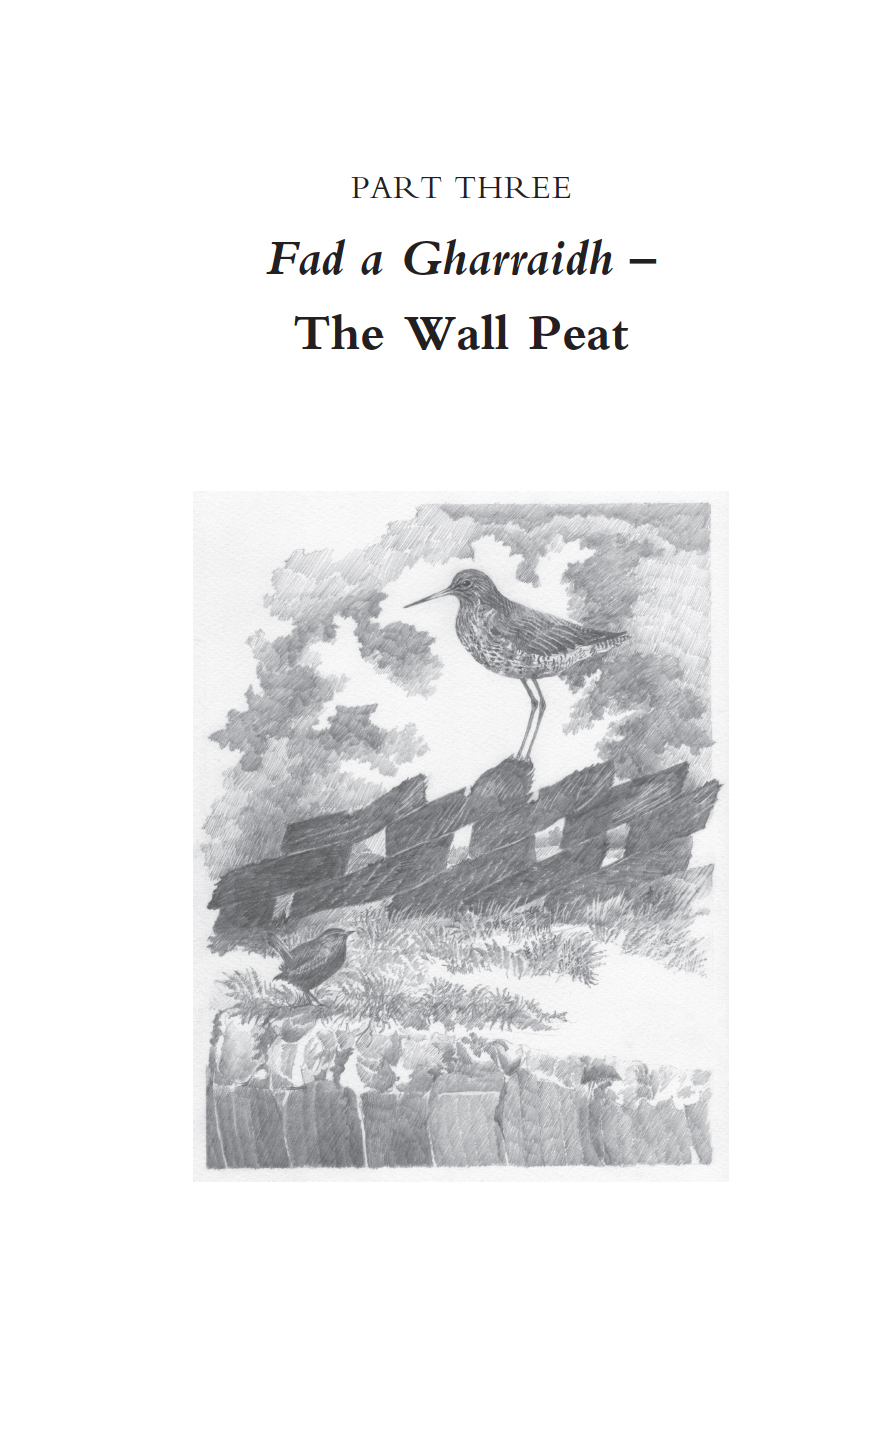 wall peat book.jpg